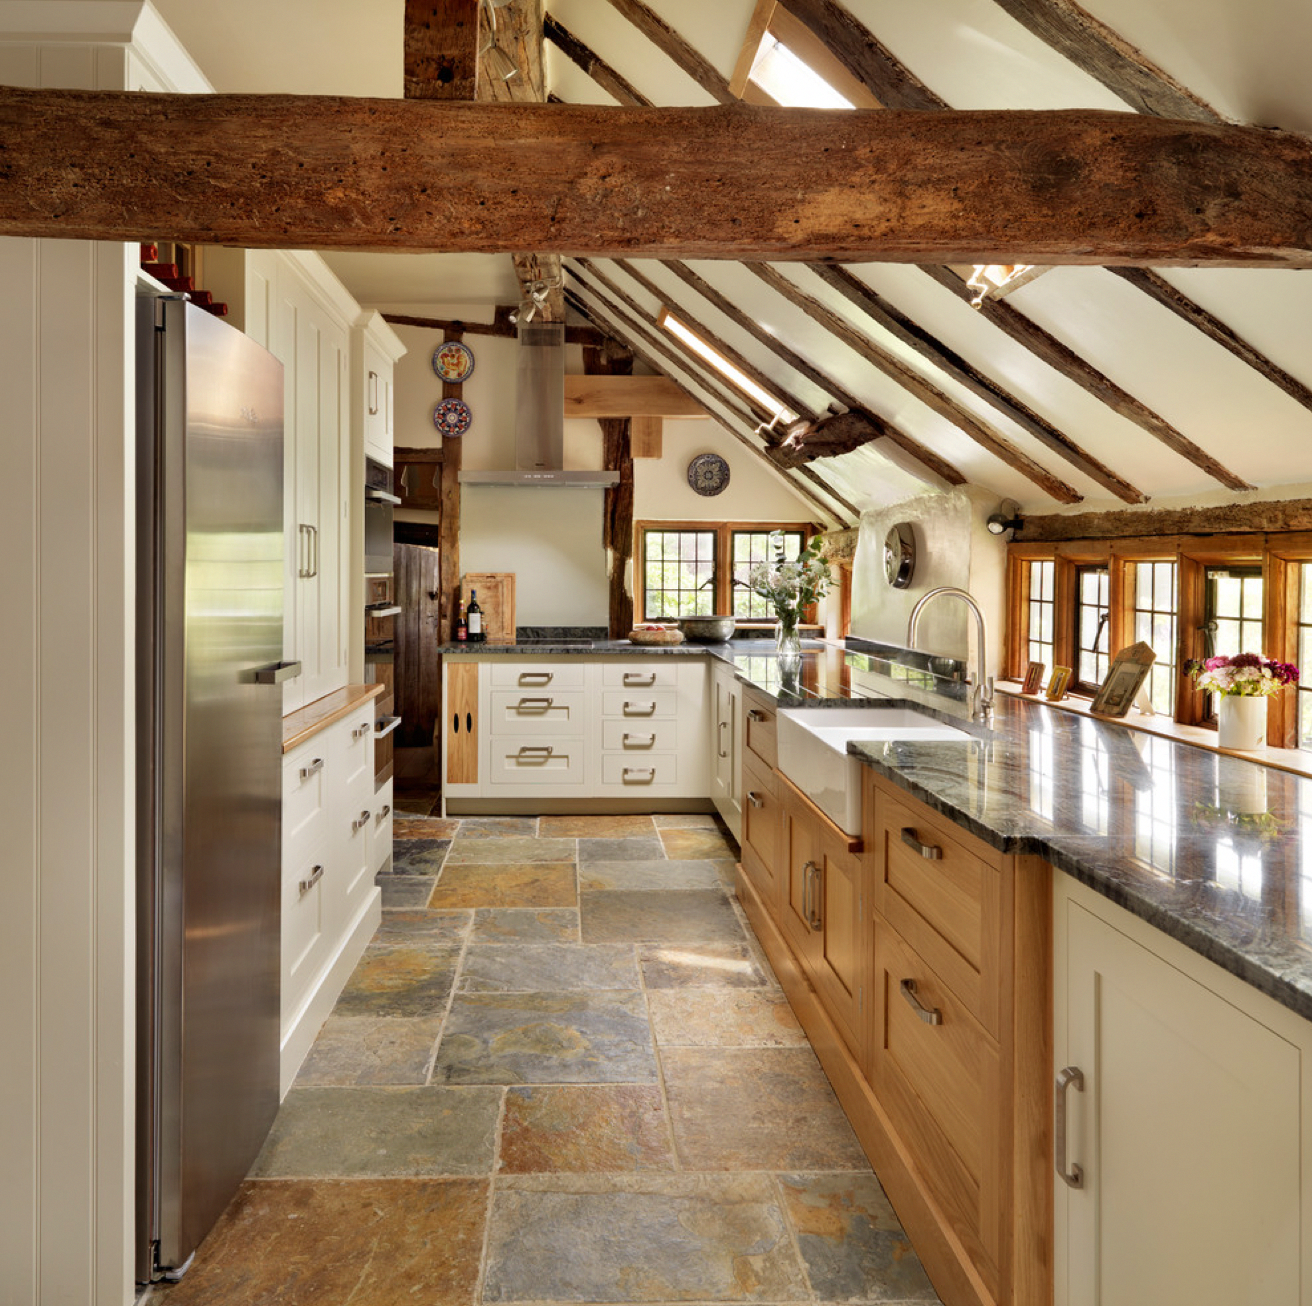 Stunning Kitchen Designs With 2 Toned Cabinets Shaker Farmhoue Kitchen Via Houzz From Harve Country Kitchen Flooring Country Kitchen Designs Kitchen Flooring